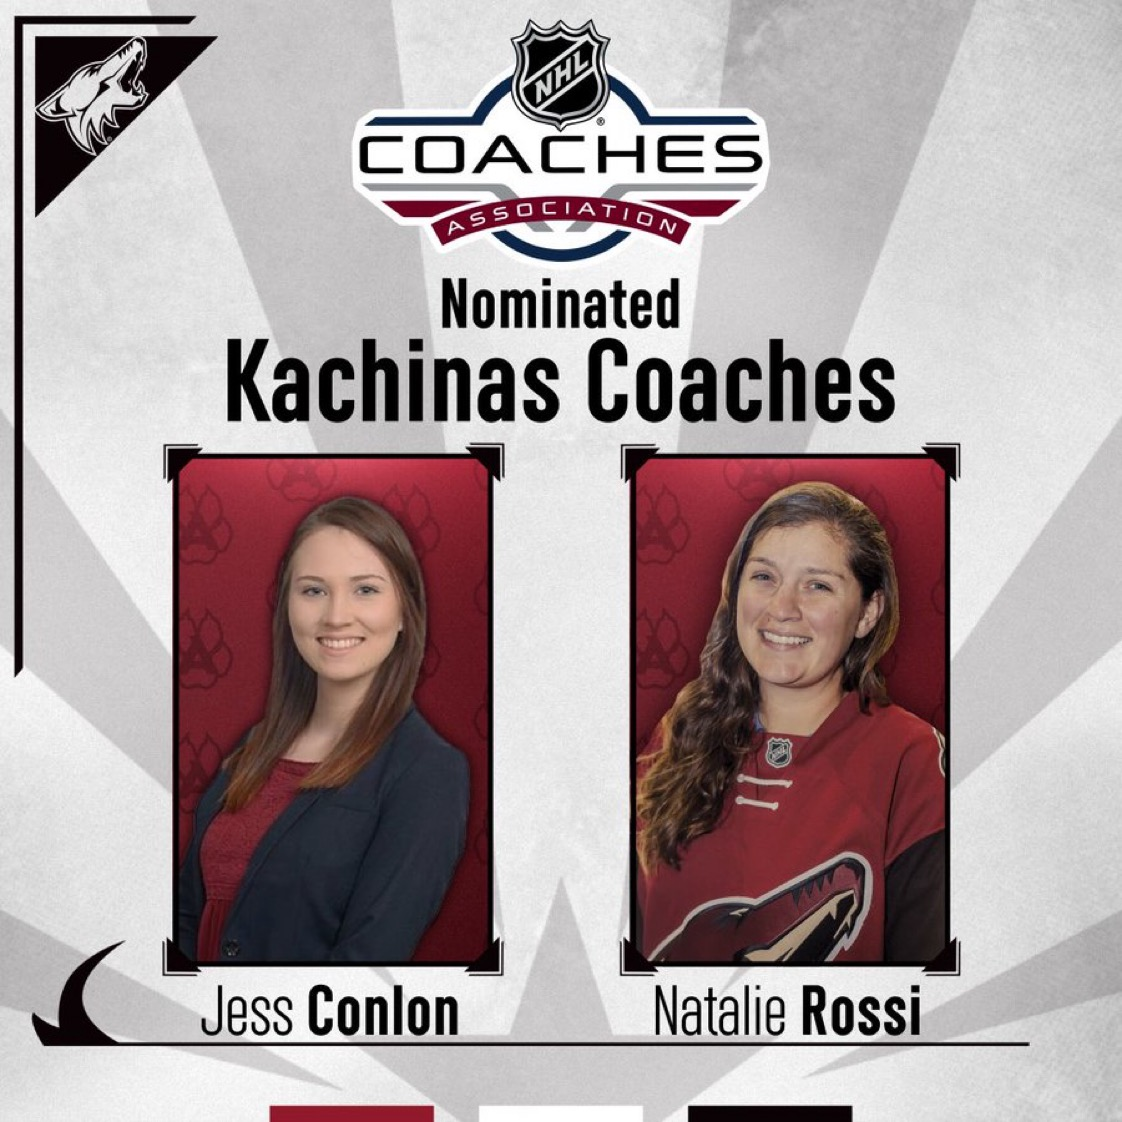 Making history, and fulfilling a dream at the same time! Hats off to @GCUWomensHockey HC Natalie Rossi, who is 1 of only 2 AZ coaches to earn a spot in the @NHLCoachesAssoc Female Coaches Development Program! Full story here: https://t.co/KVc58Amign #LivetheLopeLife #LopesRising https://t.co/08Hb791Ju7